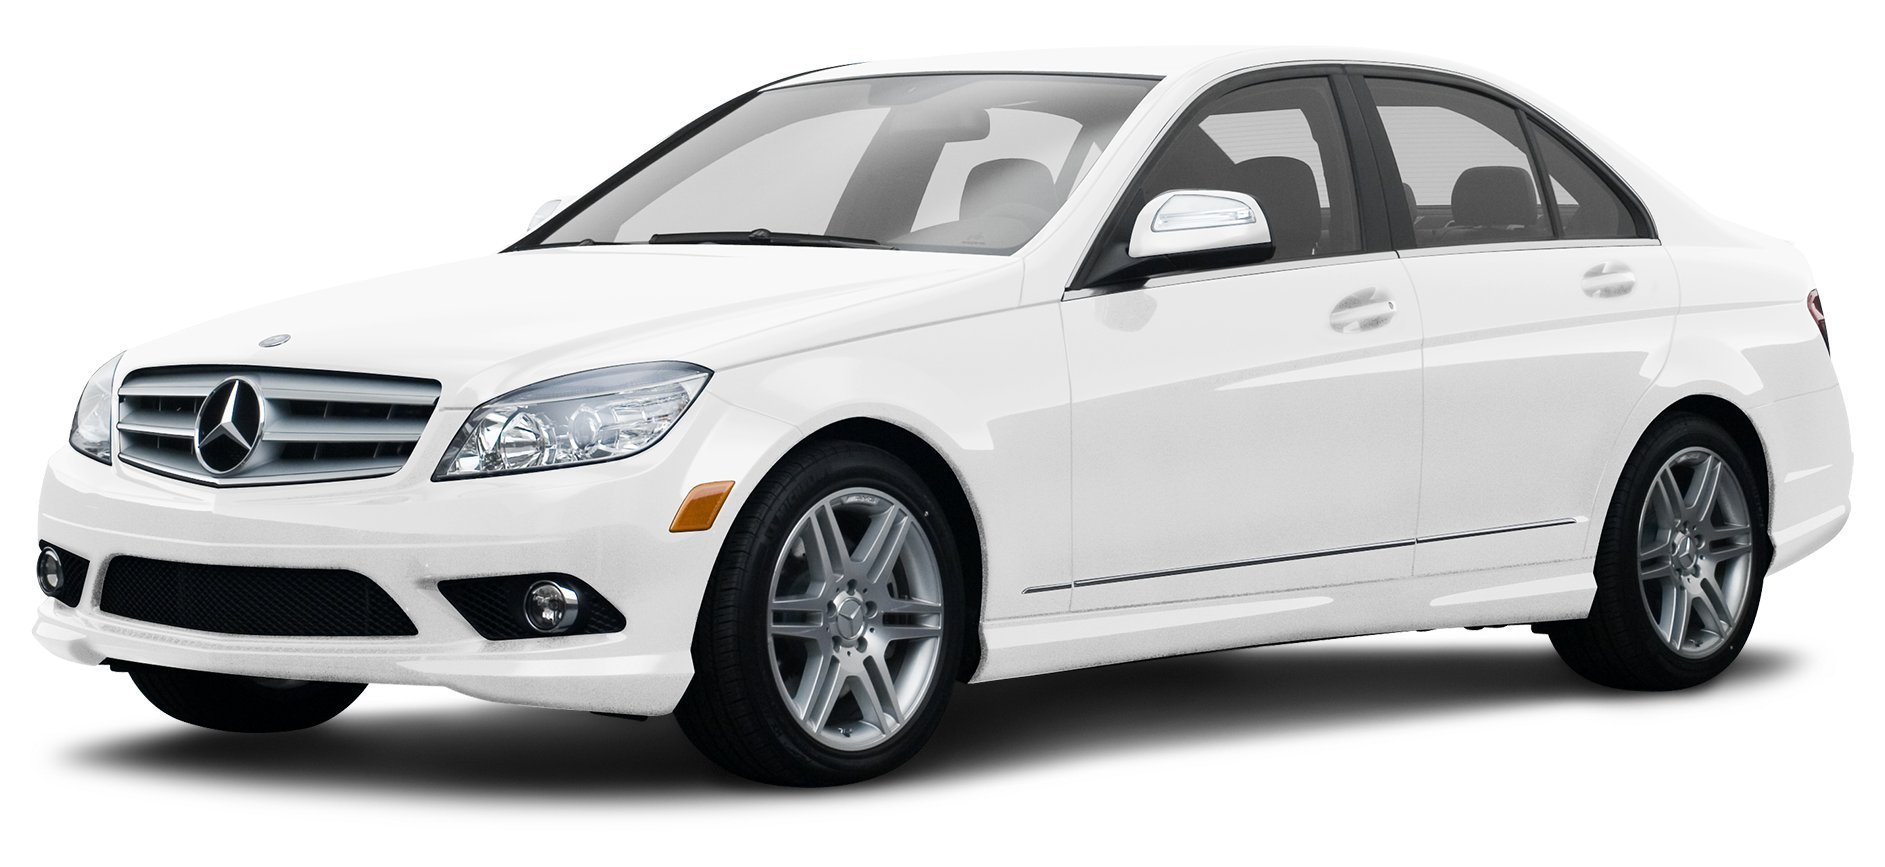 2008 Mercedes Benz C350 3.5L Sport, 4 Door Sedan Rear Wheel Drive ...